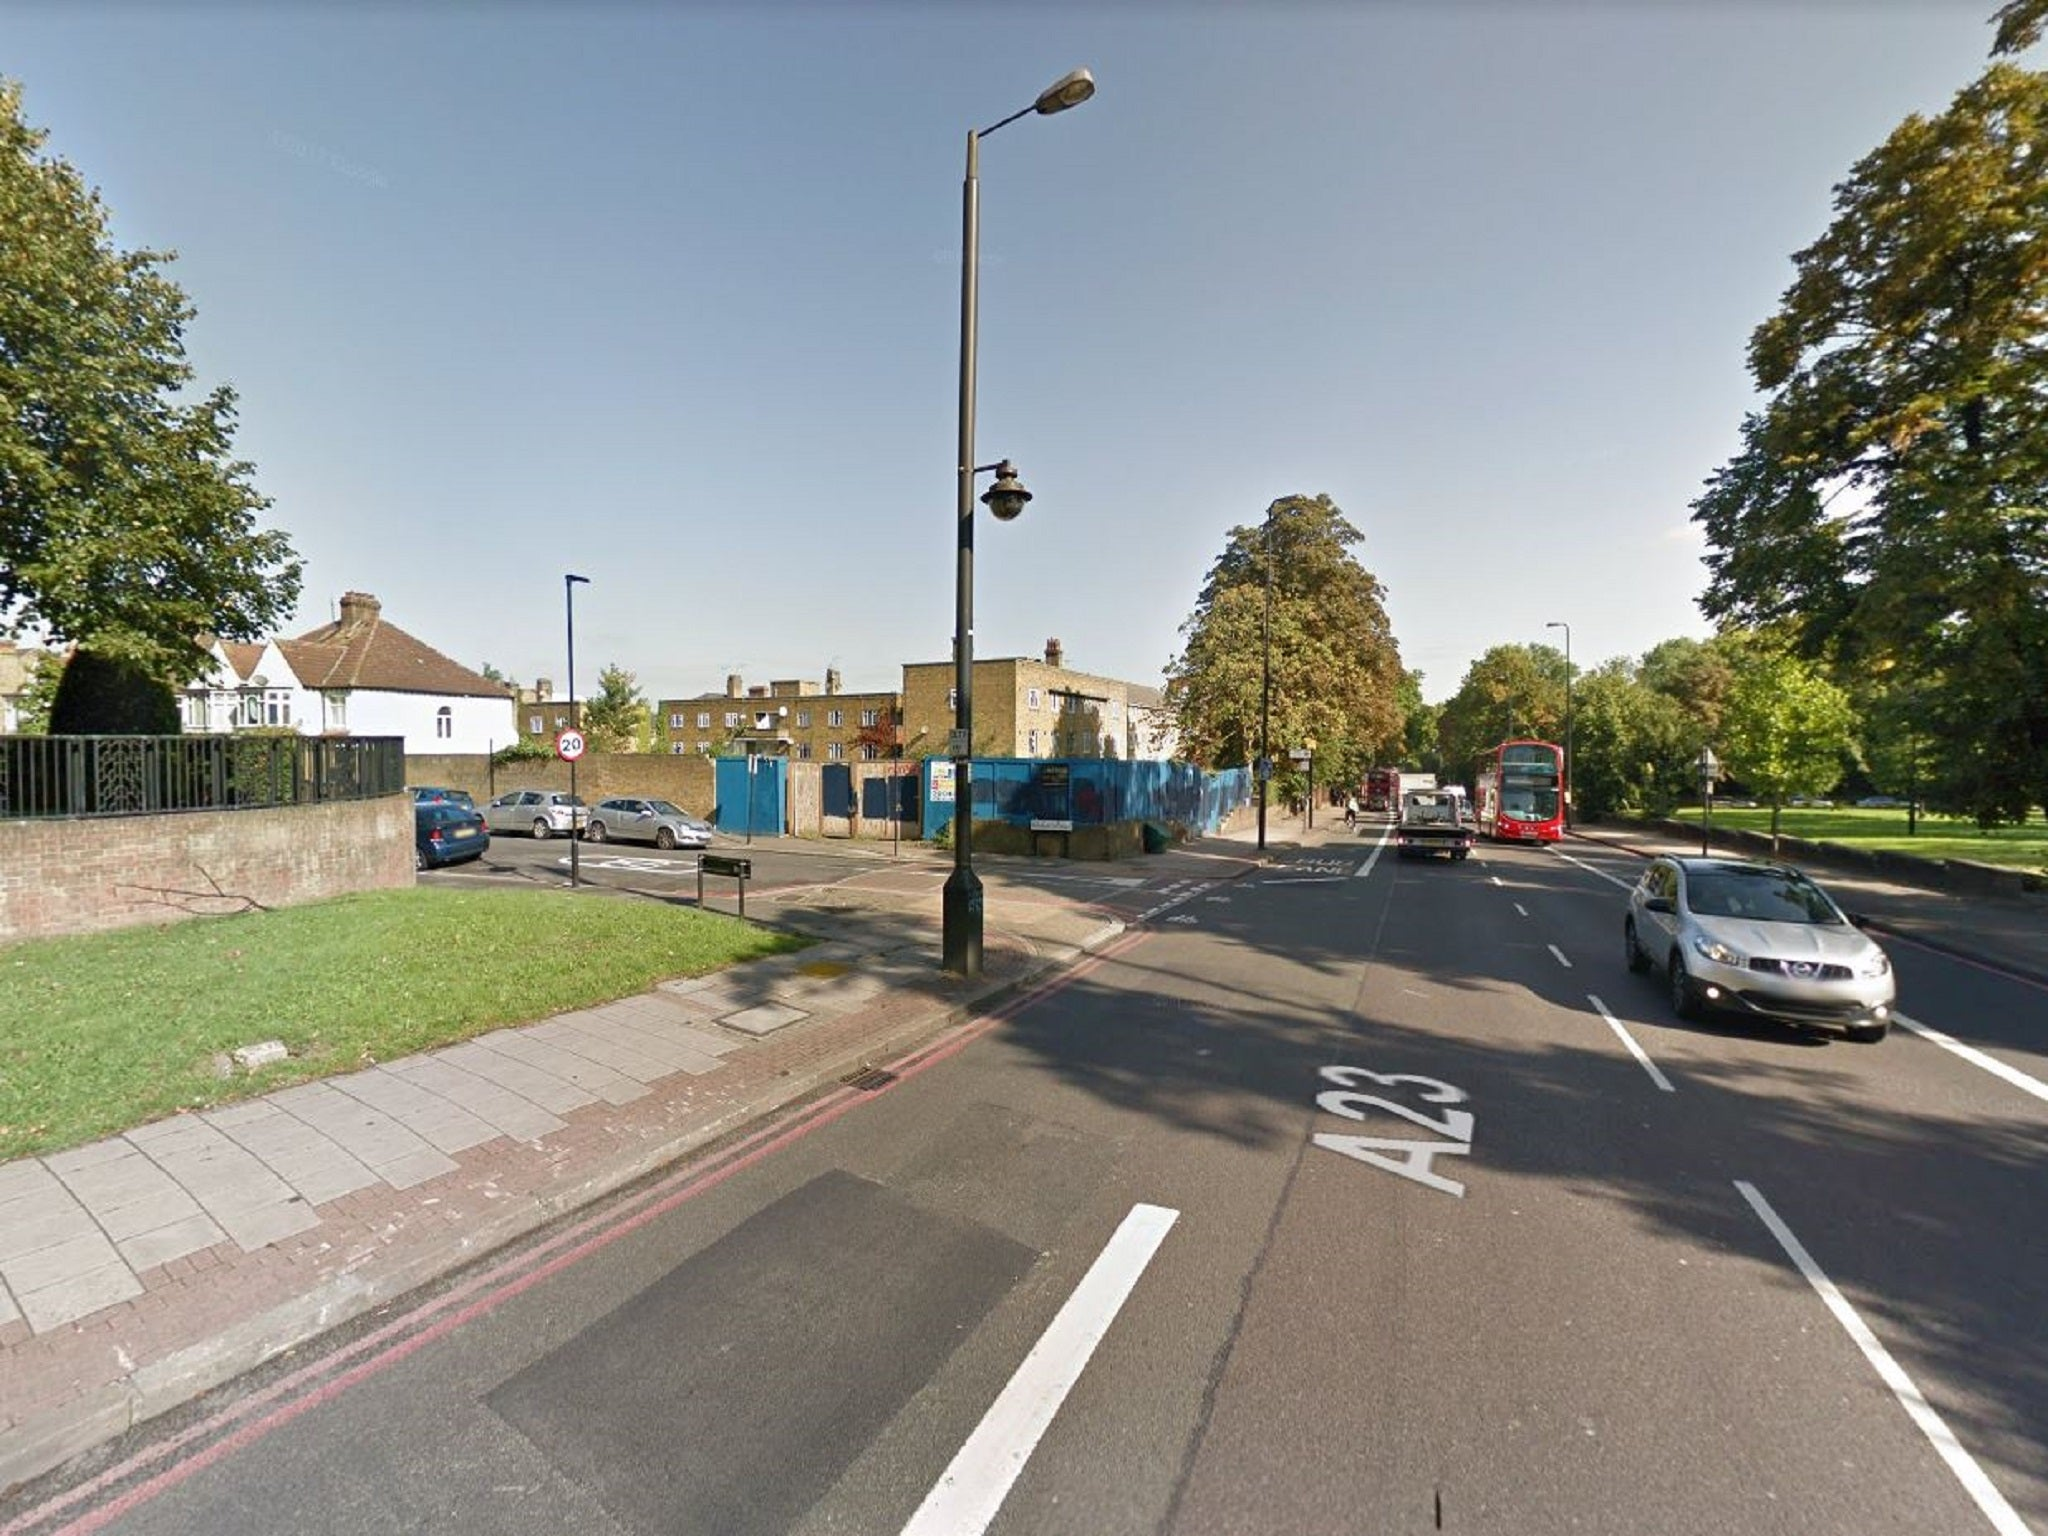 Brixton - latest news, breaking stories and comment - The Independent